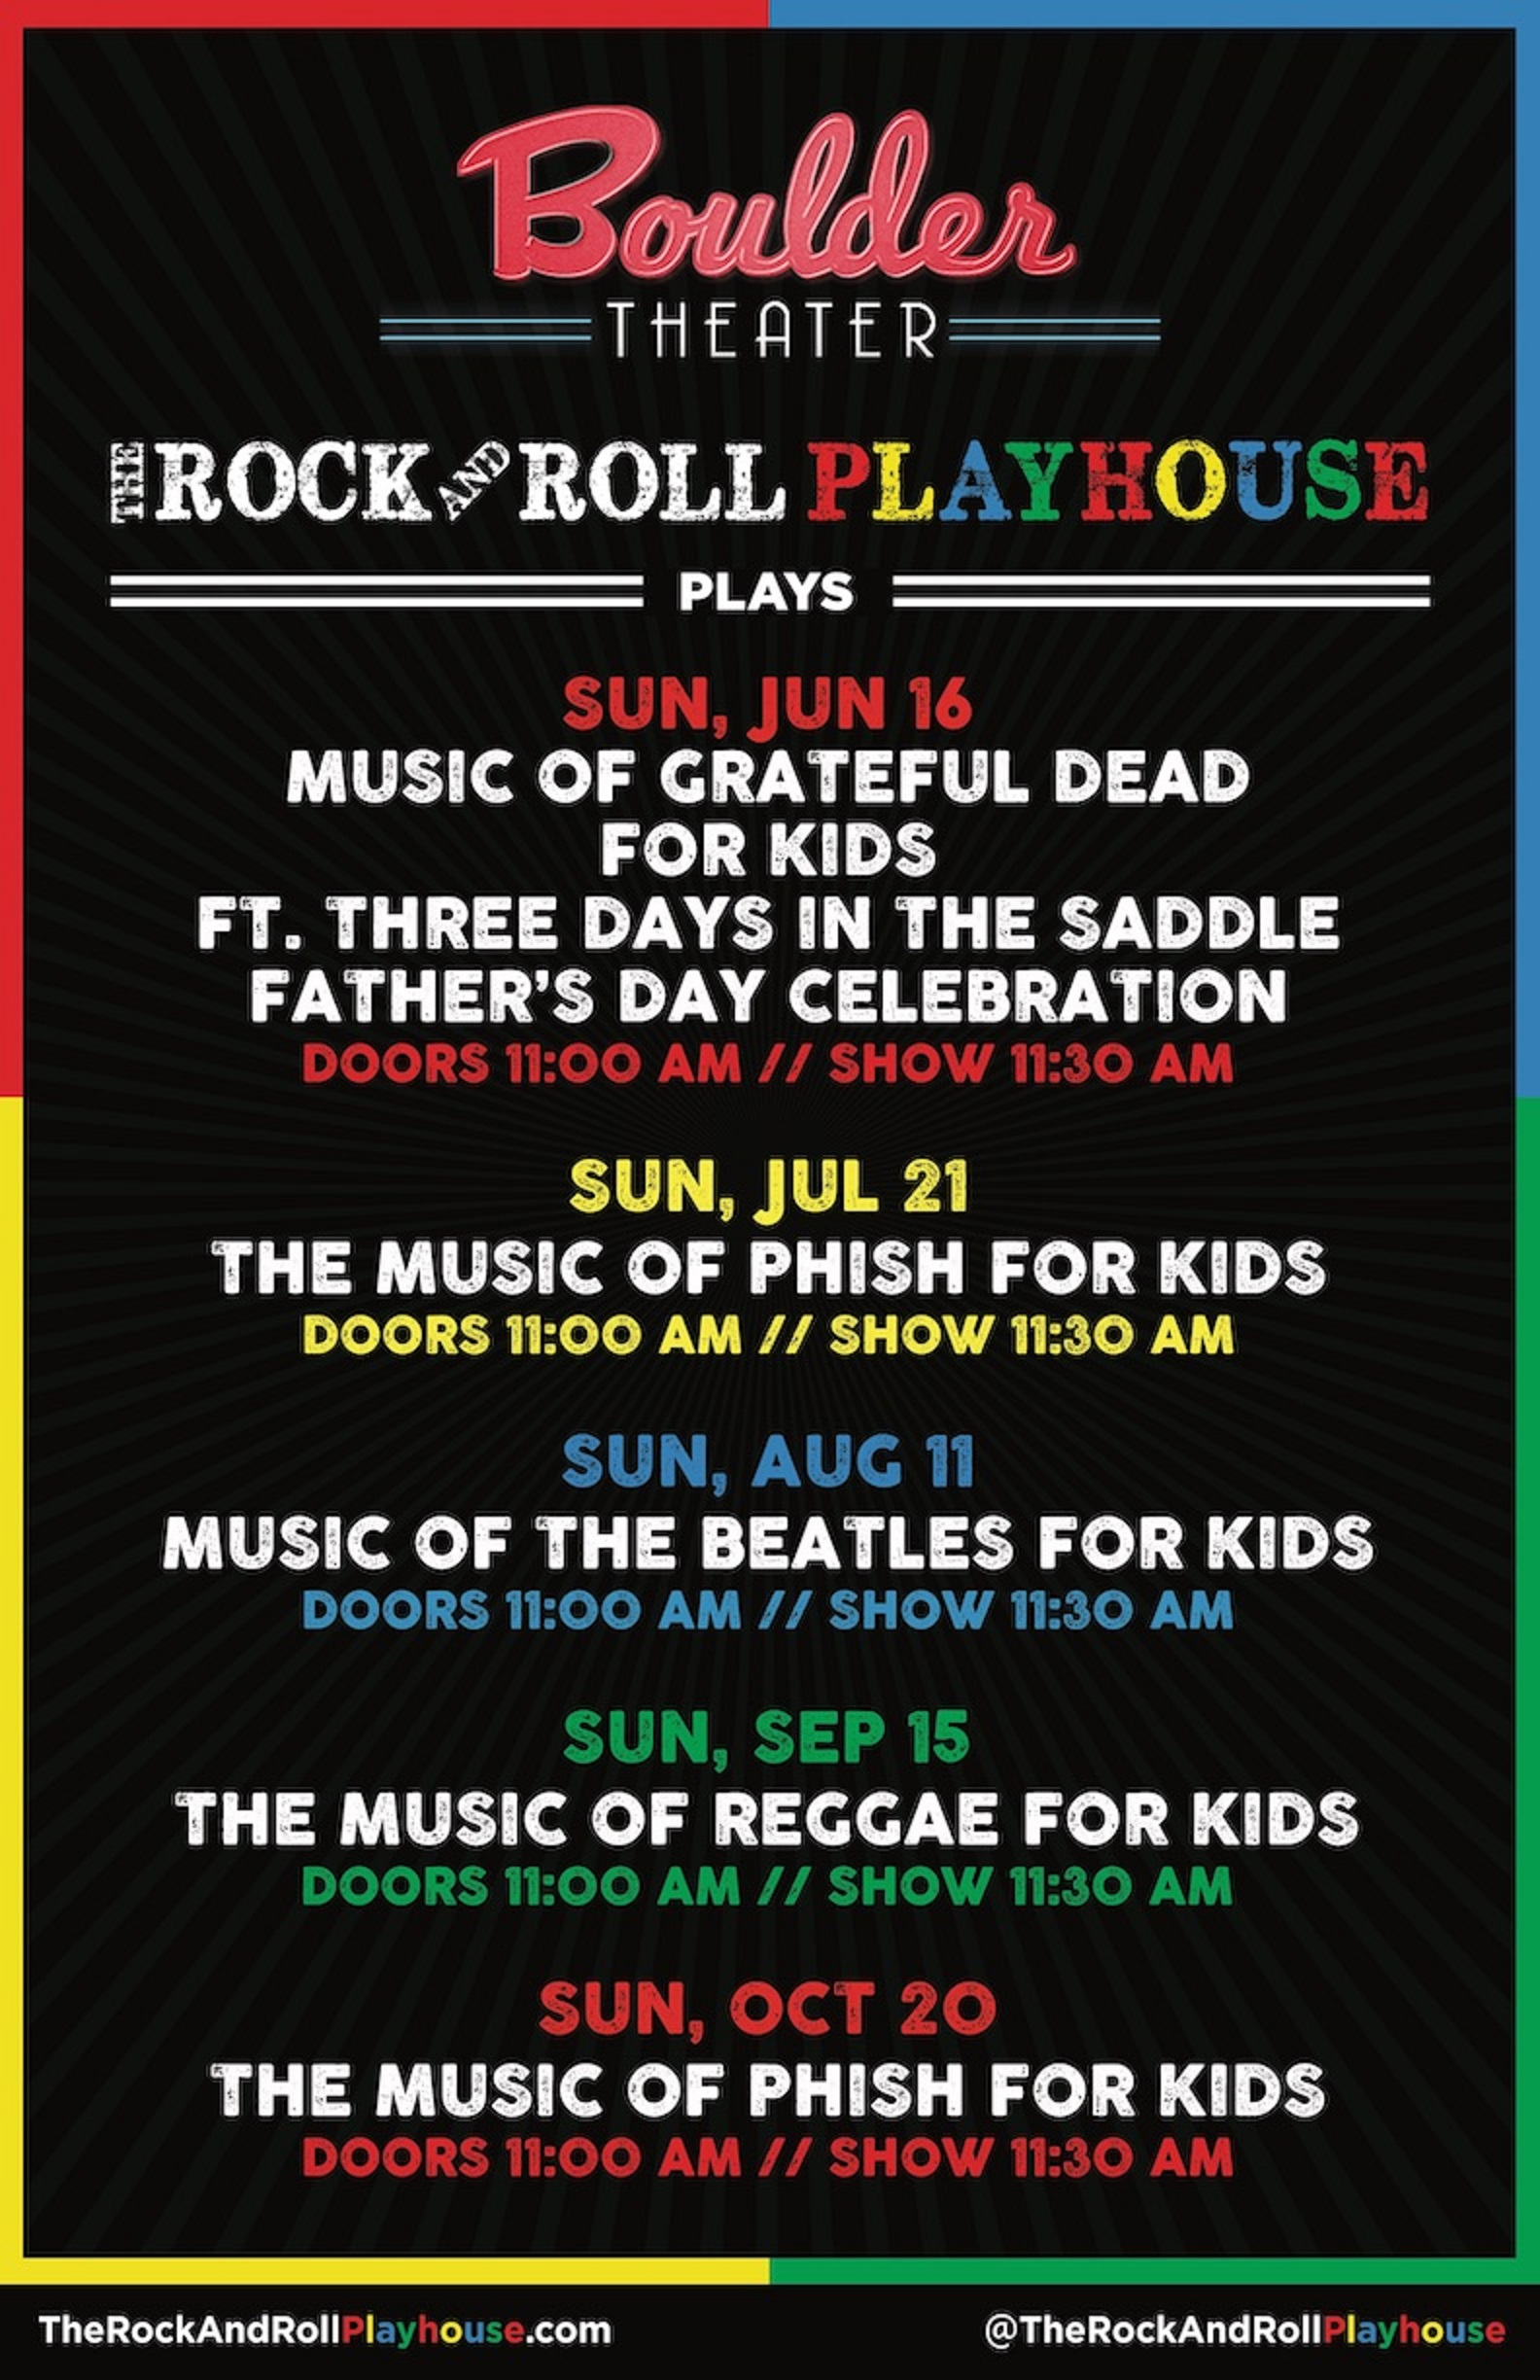 THE ROCK AND ROLL PLAYHOUSE PRESENTS 2019 EVENTS